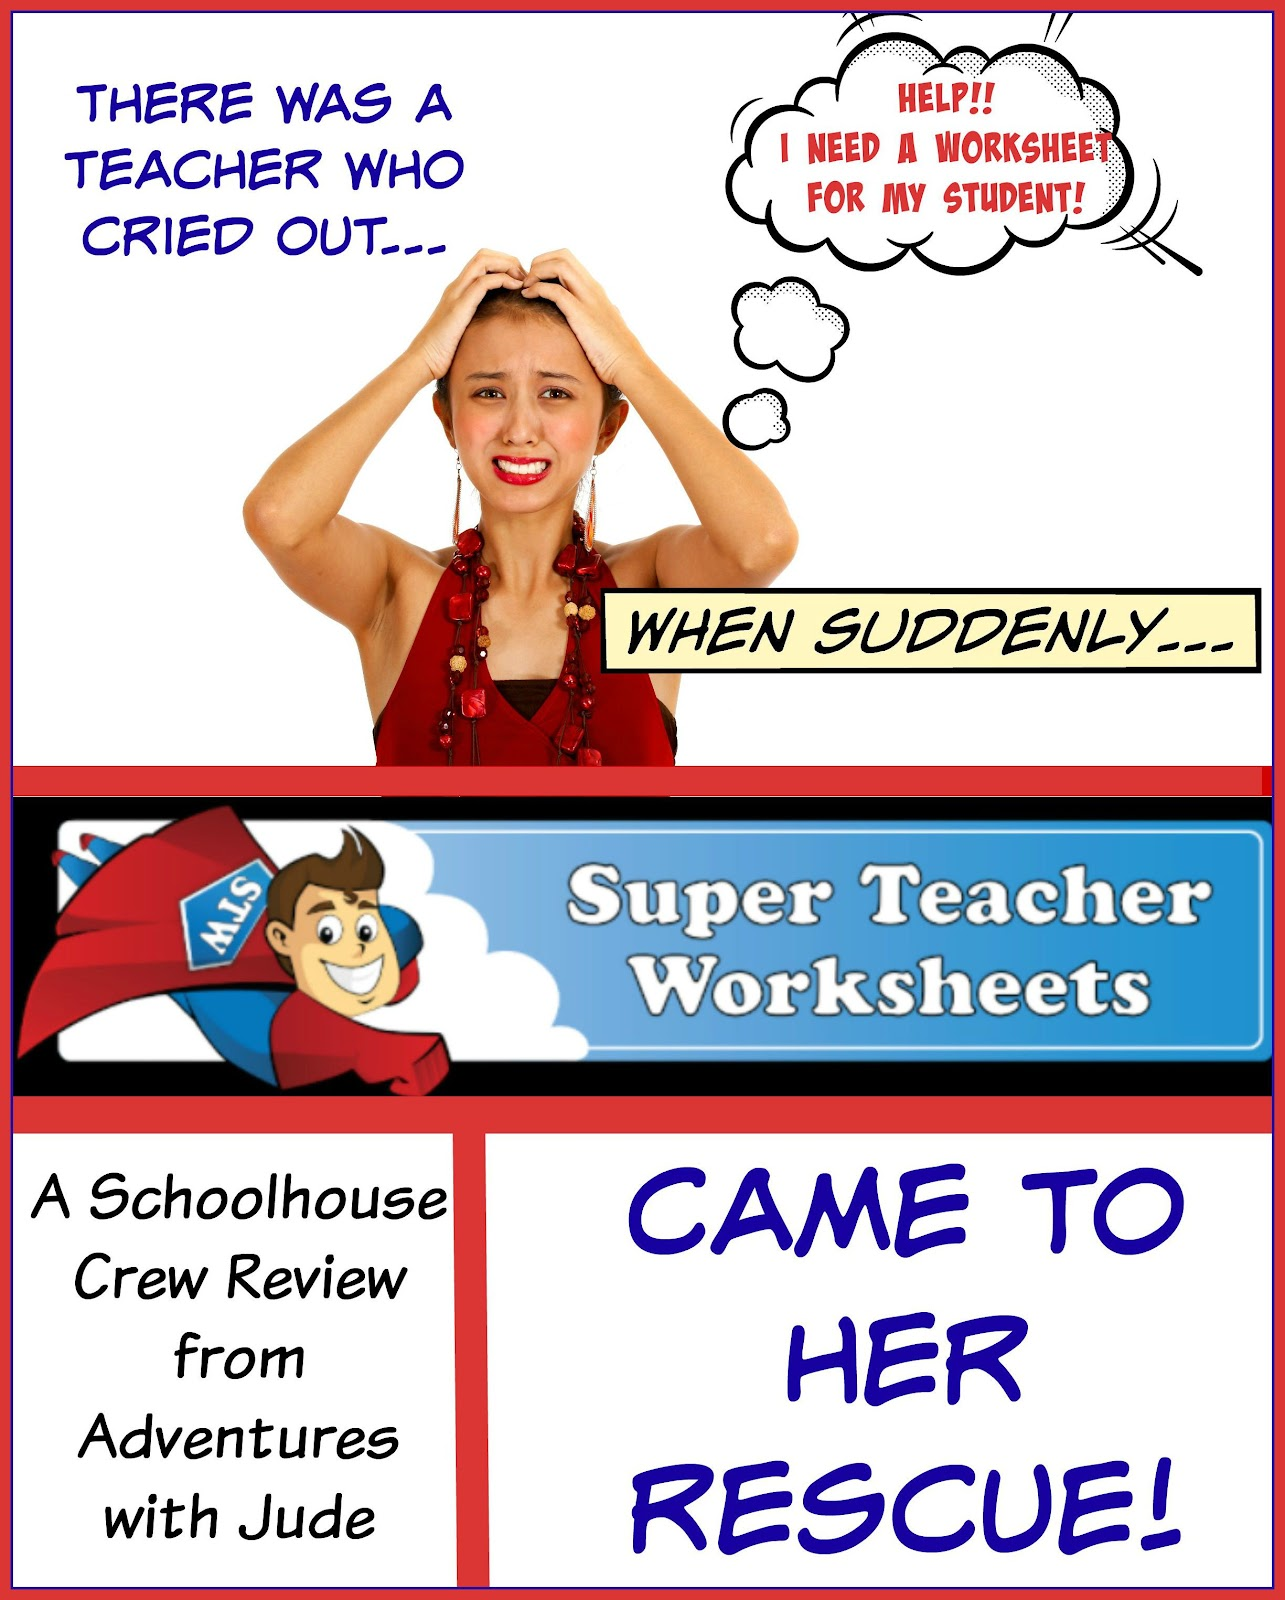 Worksheets Student Teacher Worksheets adventures with jude super teacher worksheets a schoolhouse crew have you ever found that your student is pretty close to understanding but just needs another practice or two beyond what m